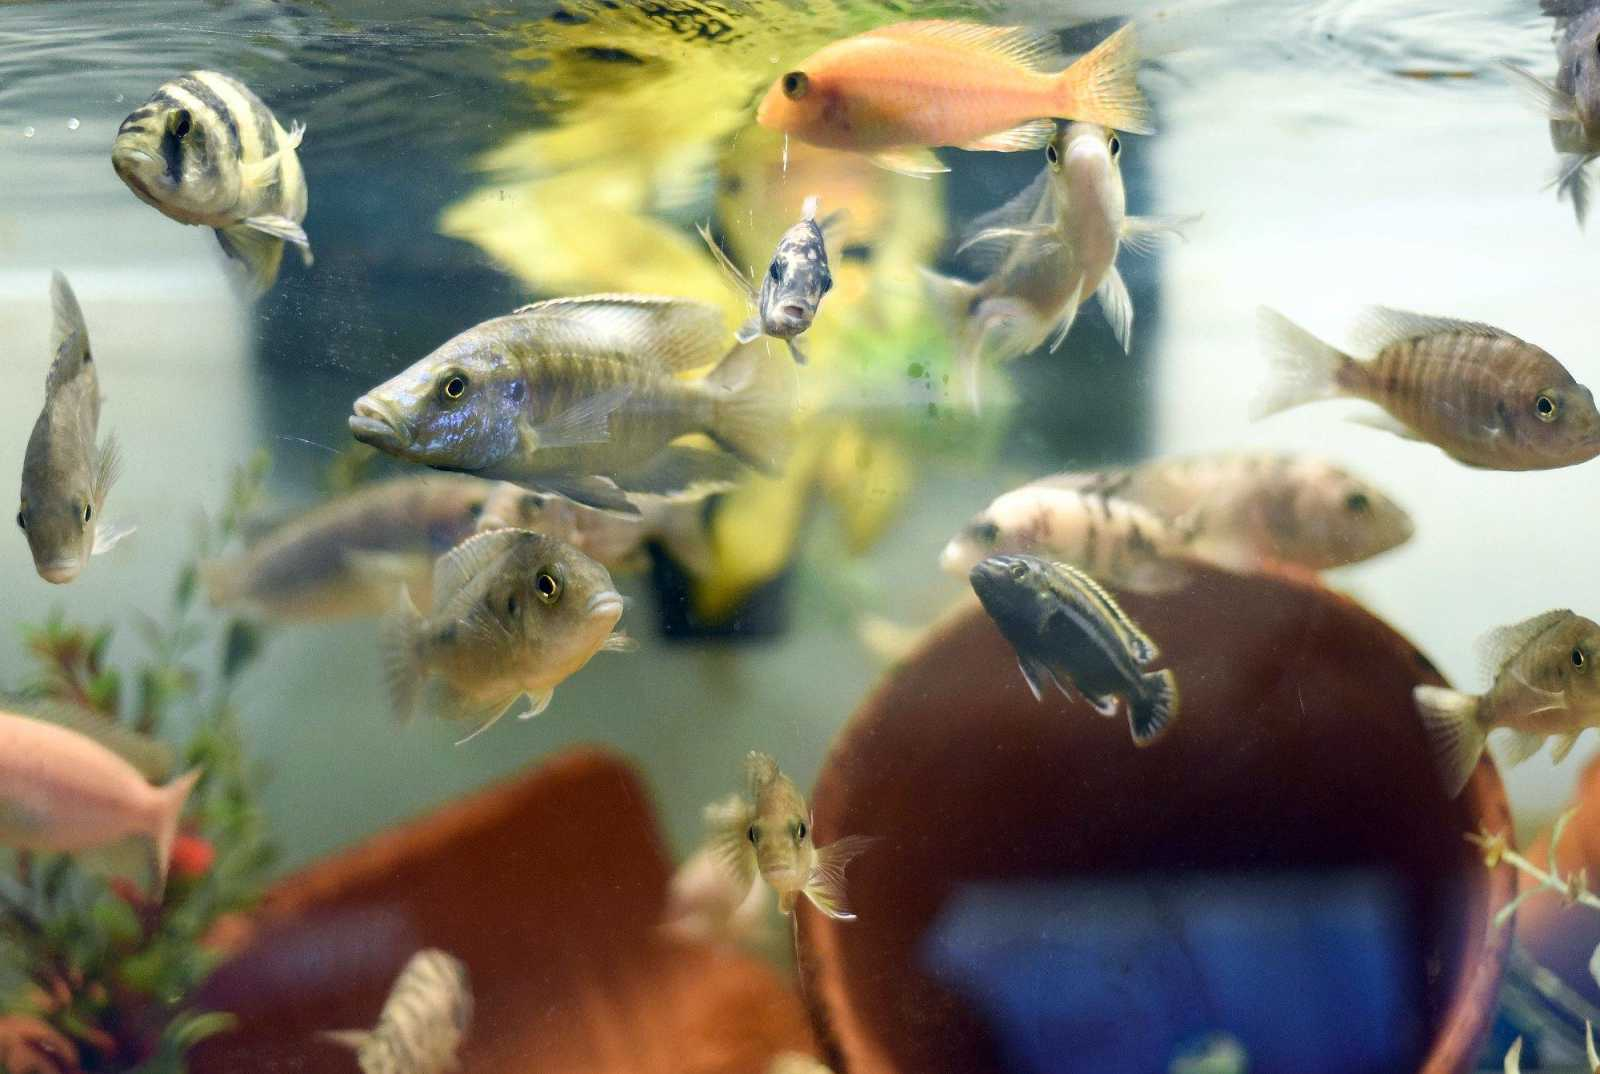 Freshwater fish hobby - Fish Swim Around In A Tank At Go Fish Tropical In Cape Girardeau On Thursday